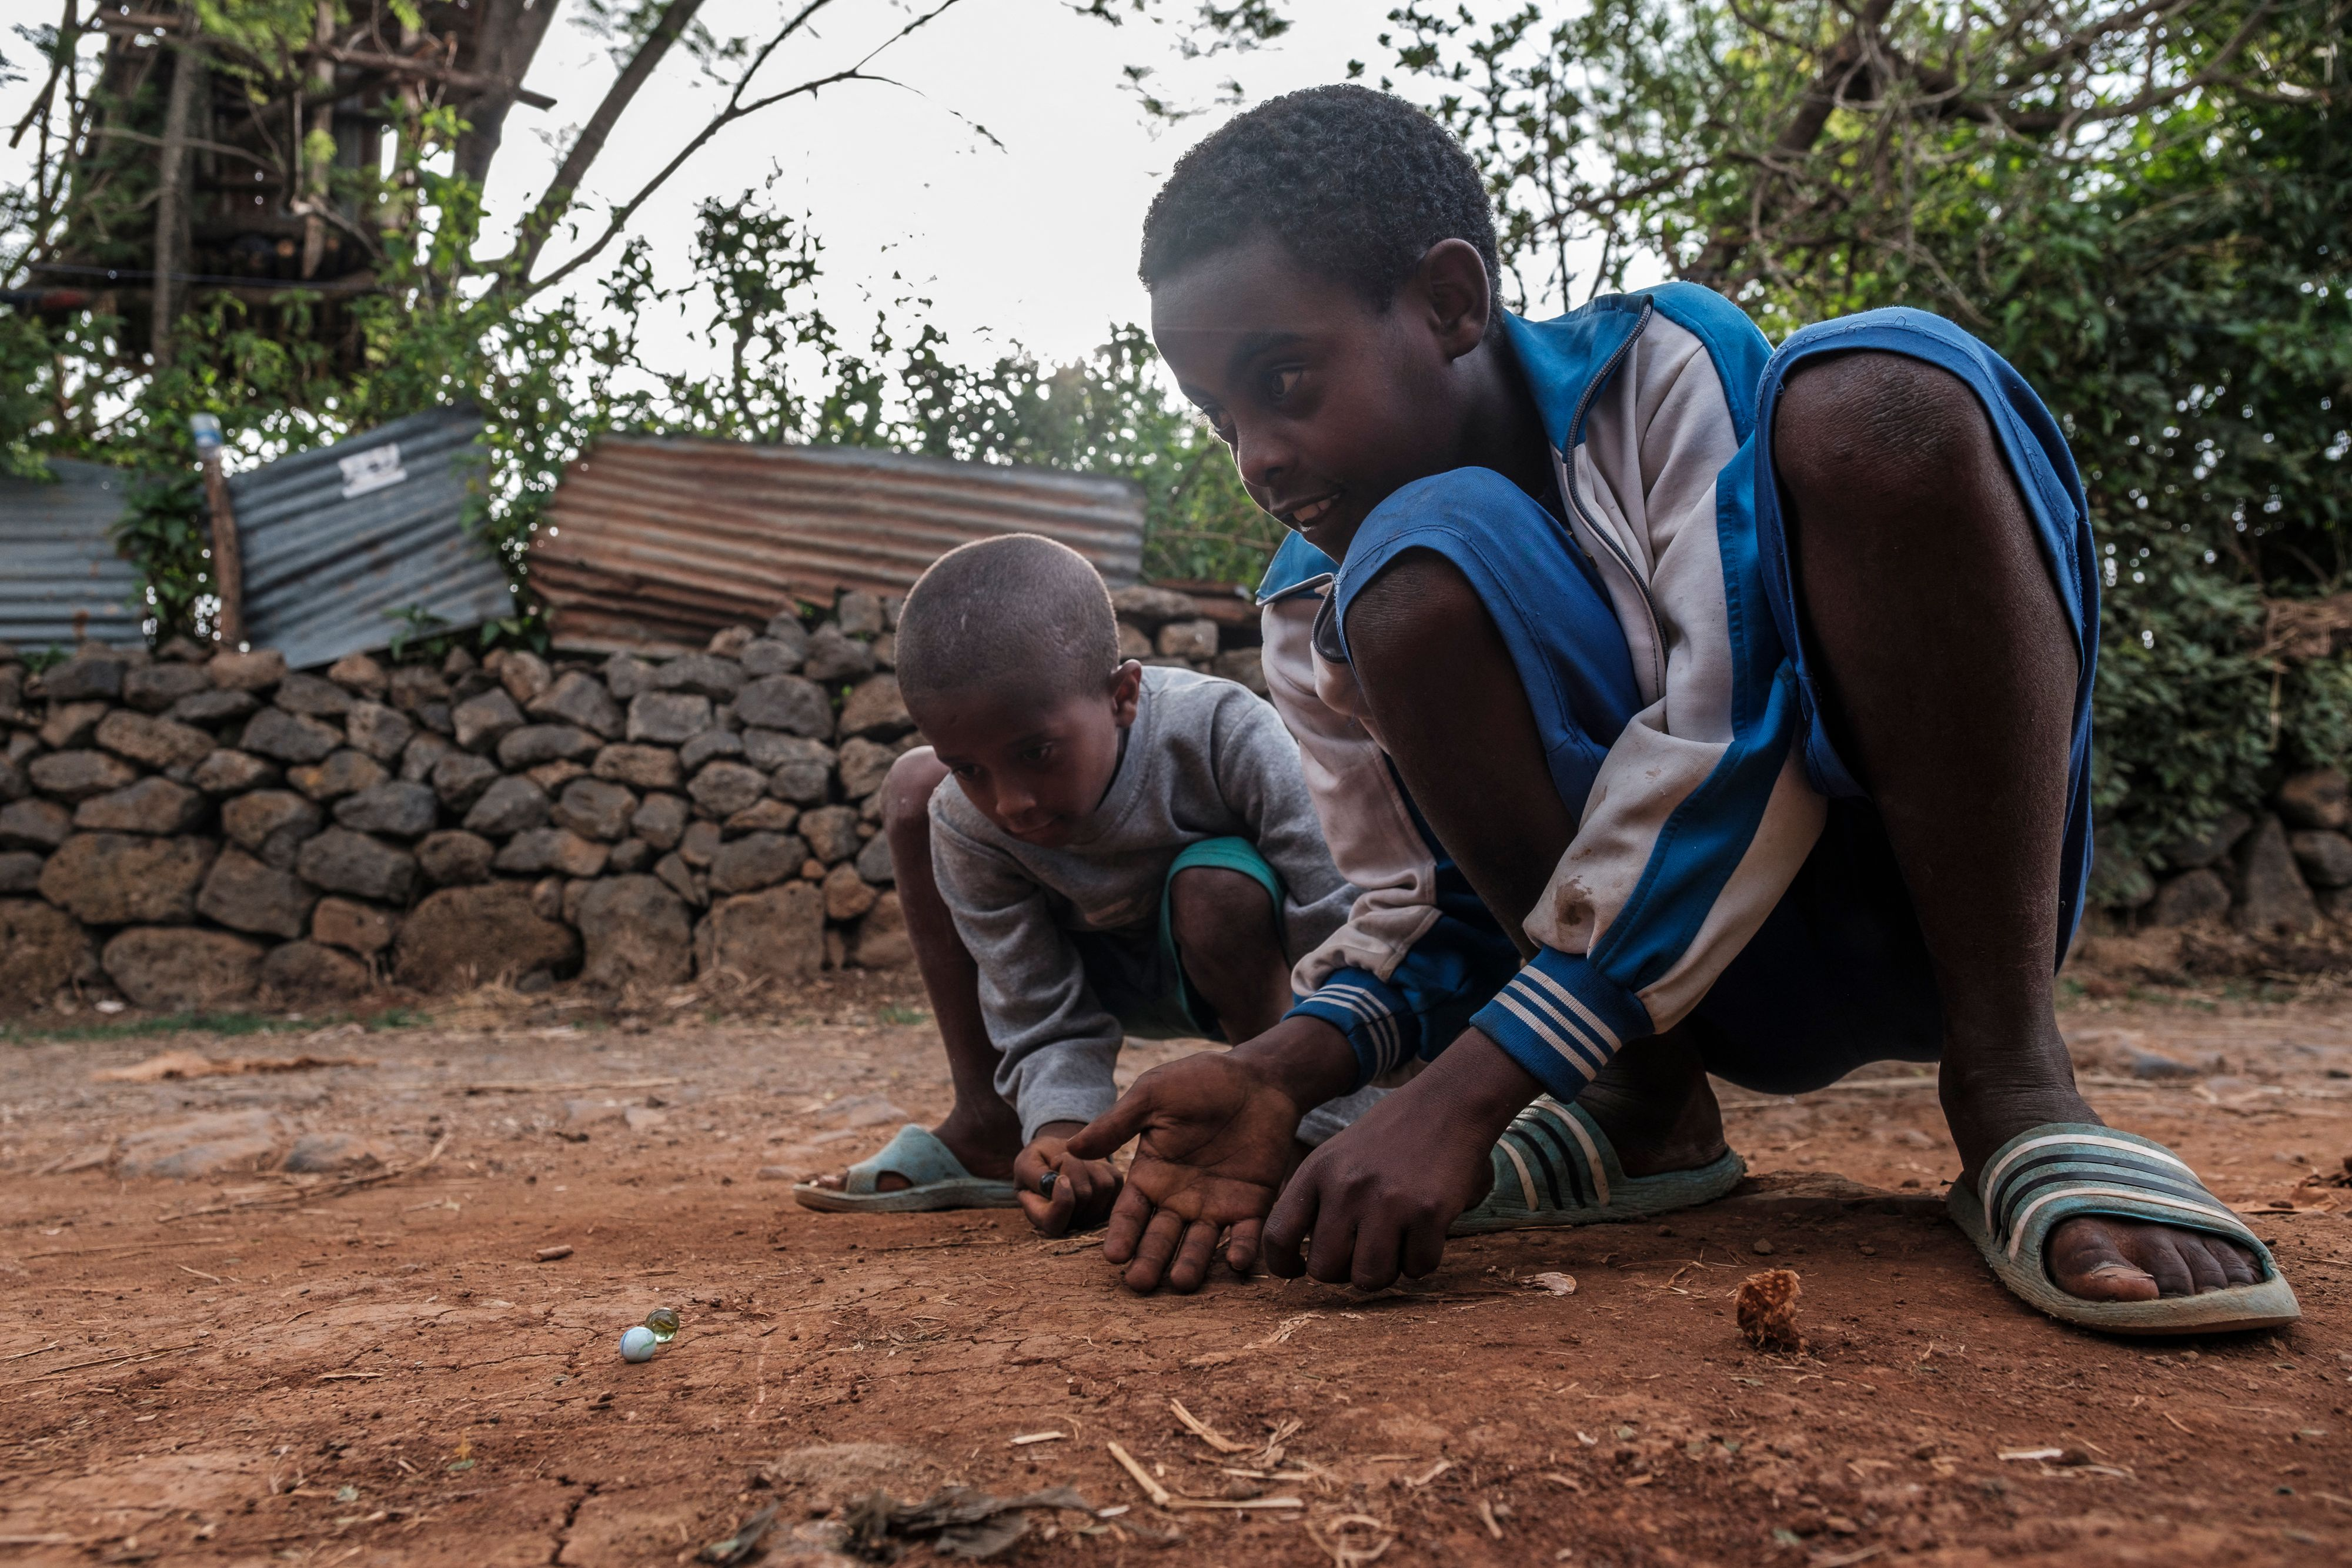 Actually children in Ethiopia playing marbles, but we're all about using our imagination here.